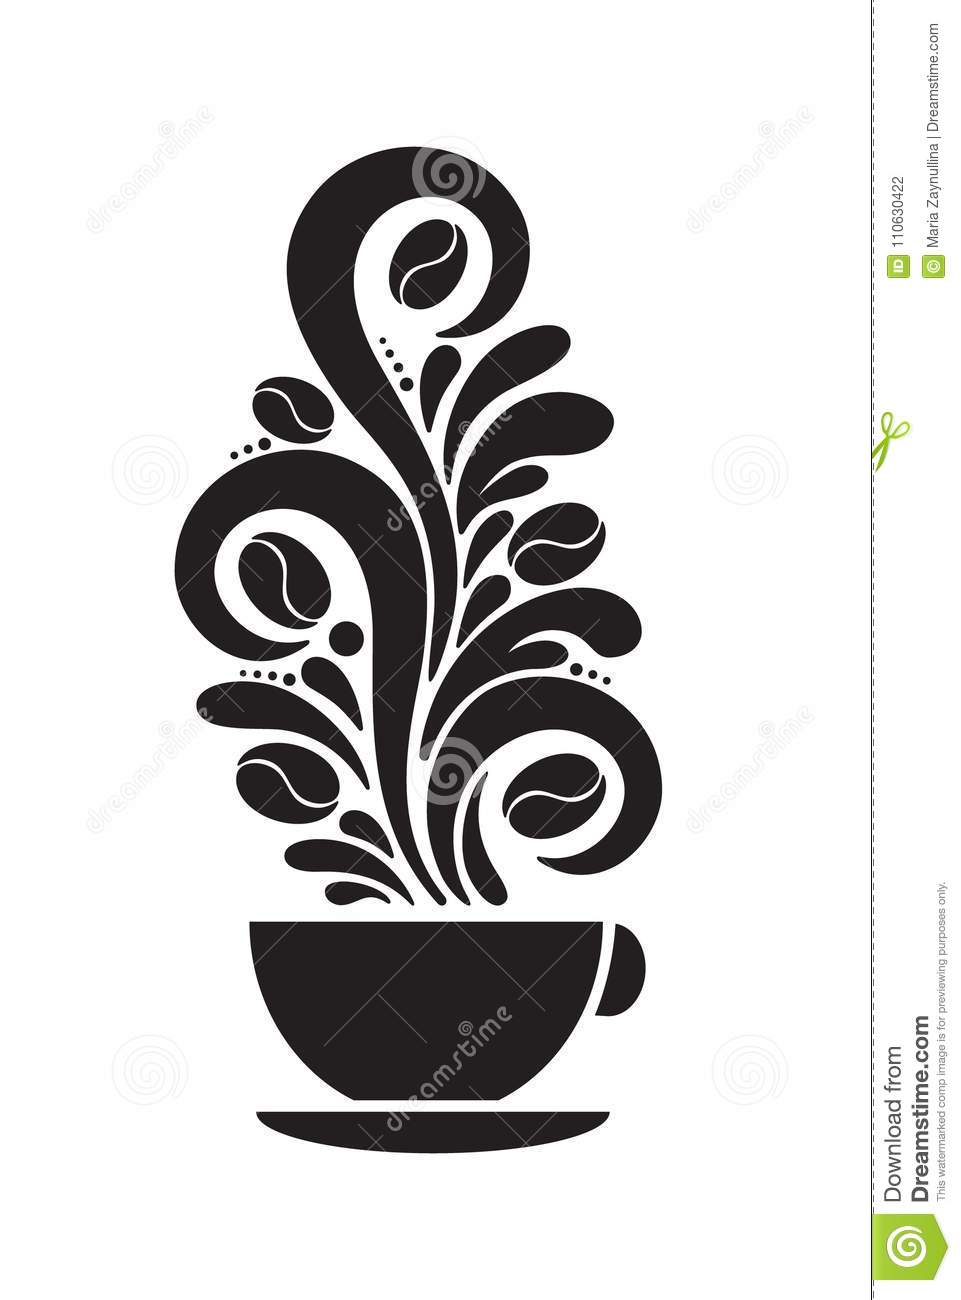 Silhouette Image Of One Morning Coffee Cup With Steam And